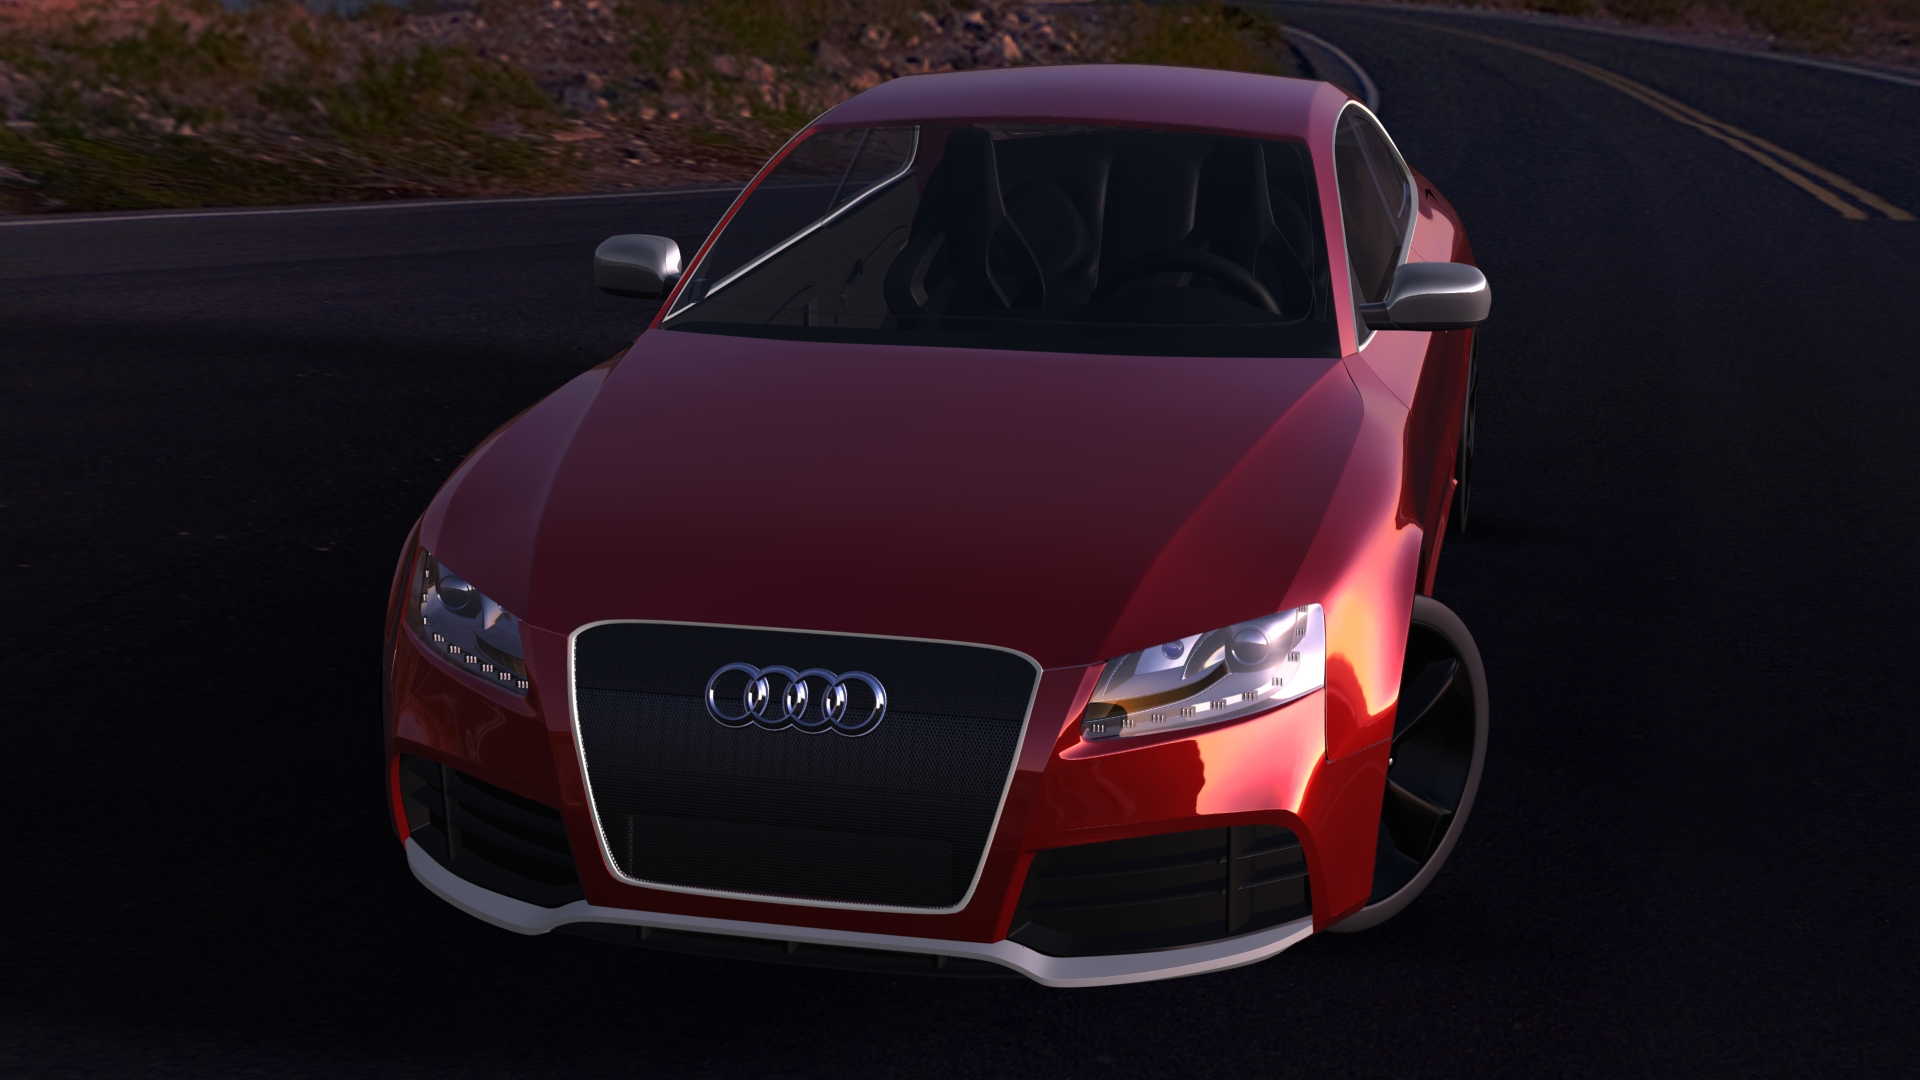 Rigged Audi RS Car D Model Vehicles D Models Accurate Max AR VR - Audi car 3d